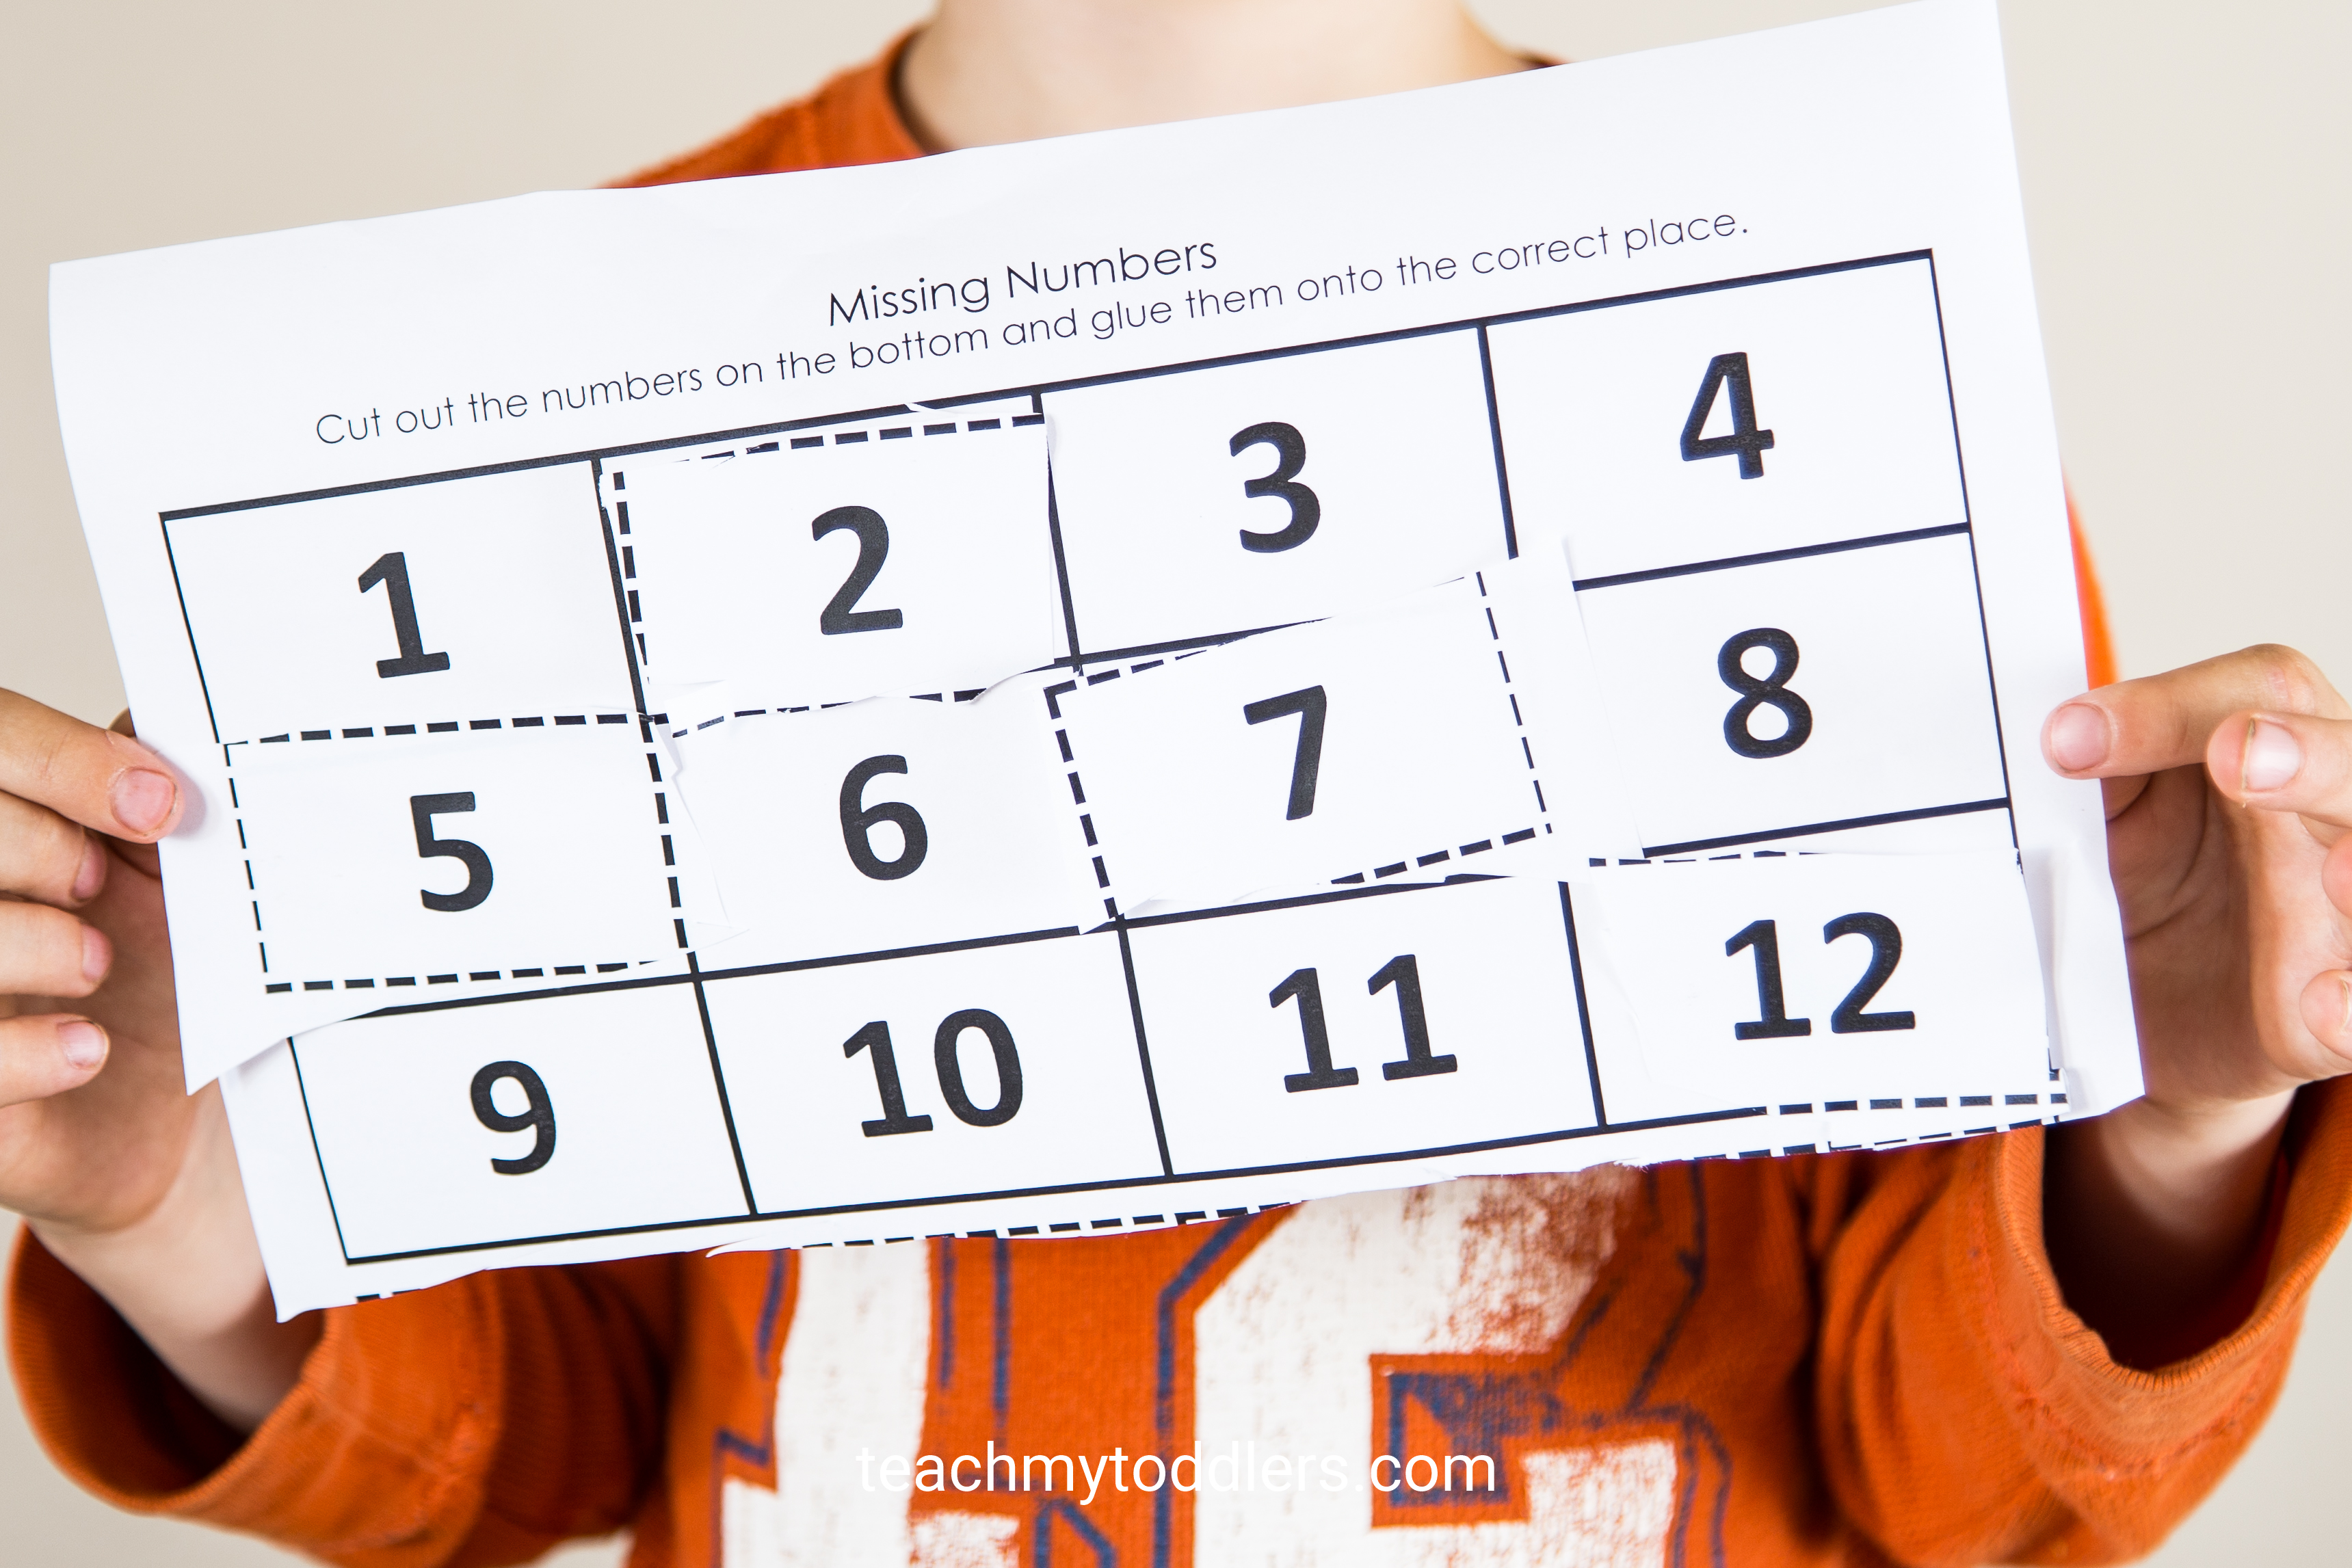 Find out how to use this missing numbers activity to teach your preschoolers numbers